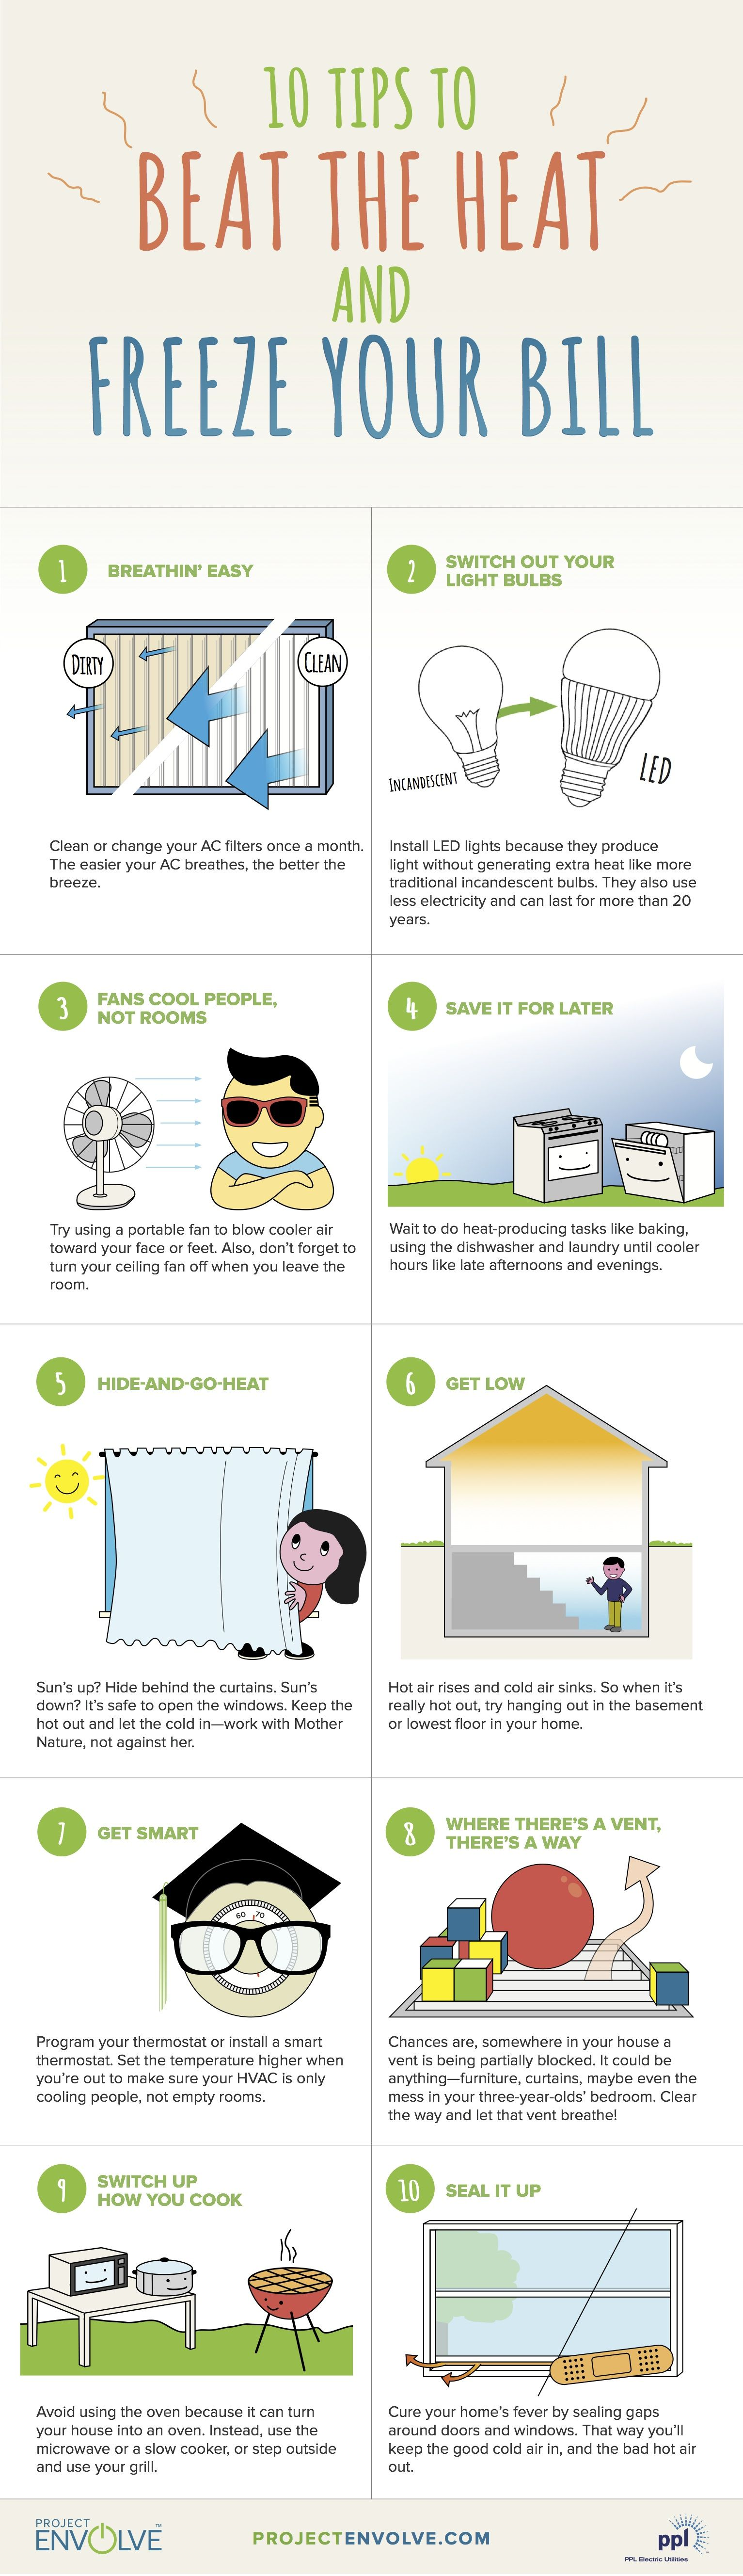 ada7eb89118f Beat the heat and stay cool with this list of energy savings tips, complete  with a round-up of fruity summer drink ideas to keep you hydrated.